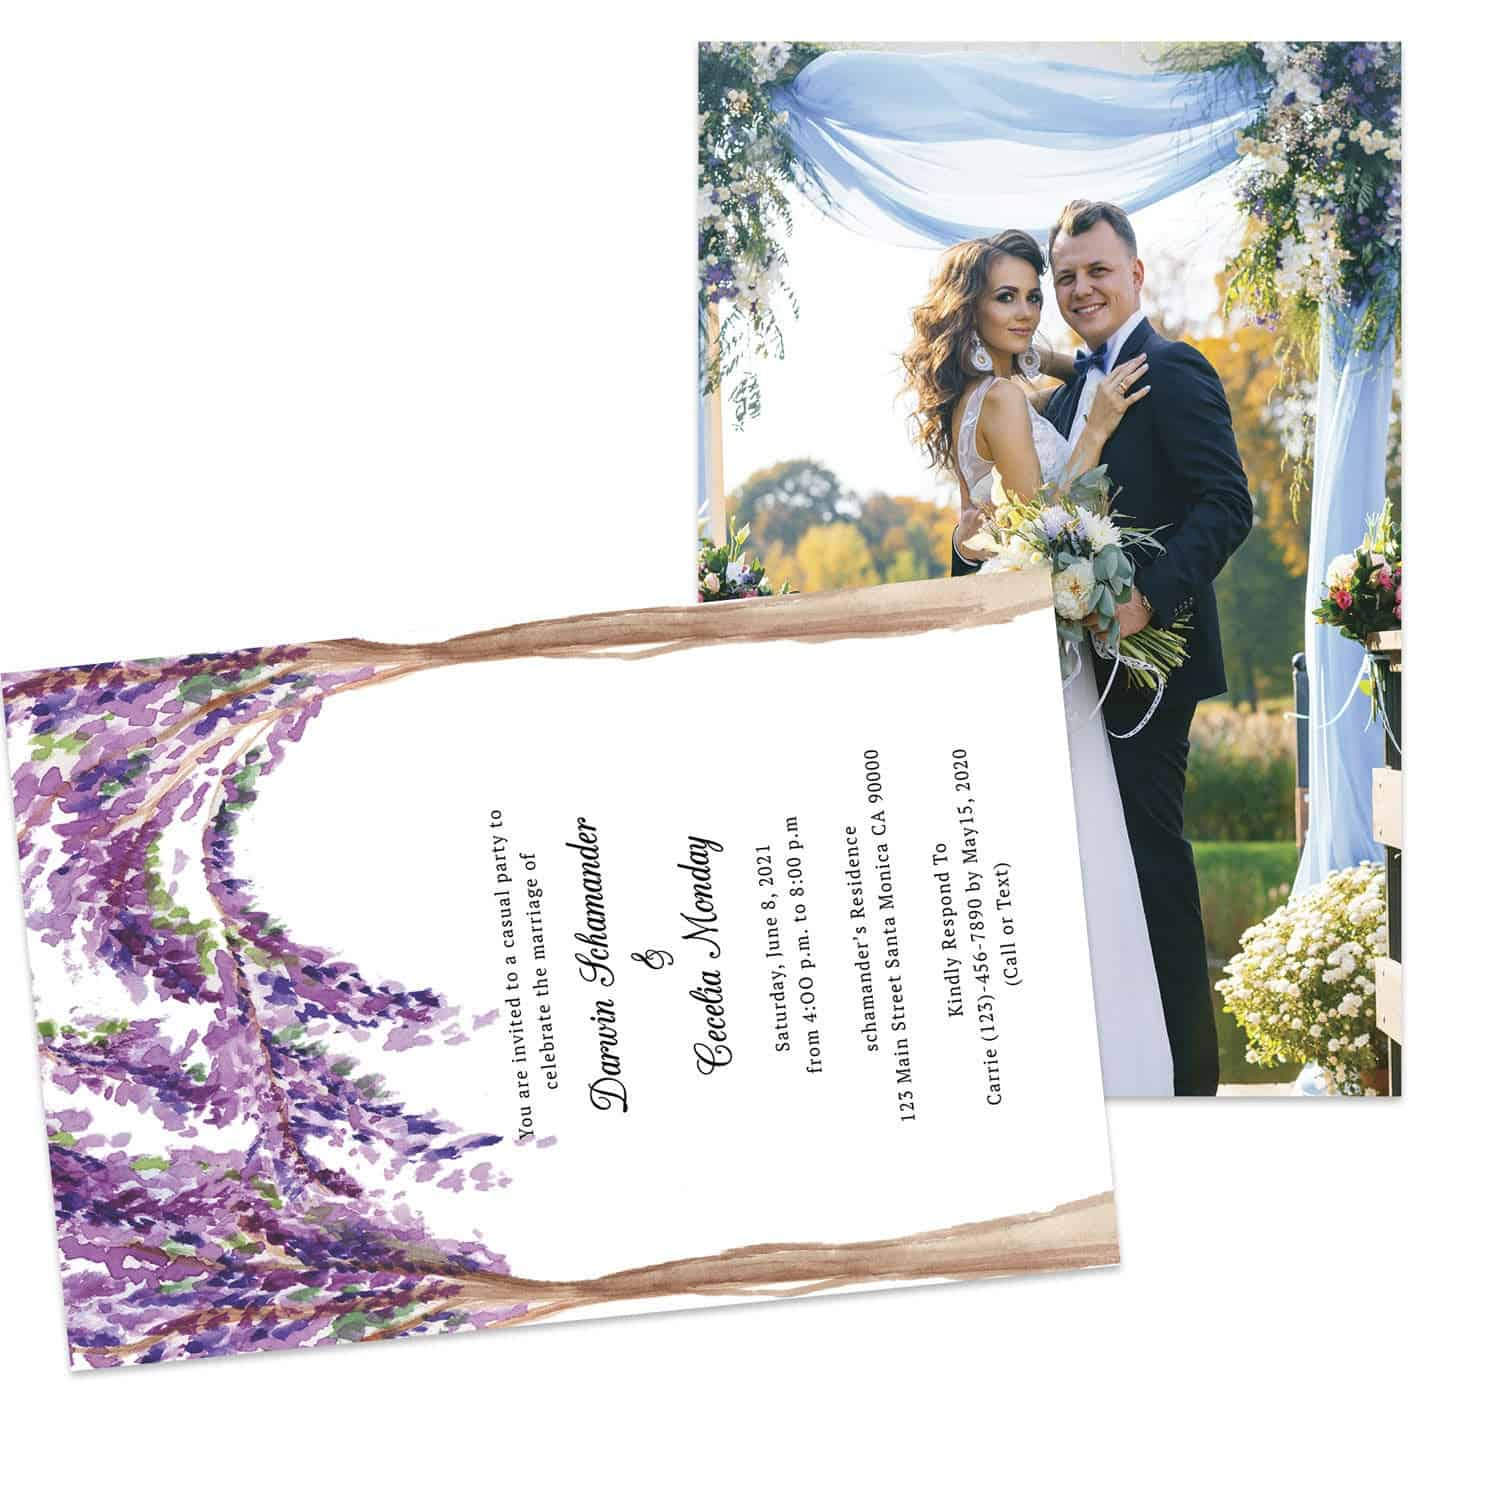 Bougainvillea Rustic Wedding Elopement Announcement And Party Reception Invitation Cards #440